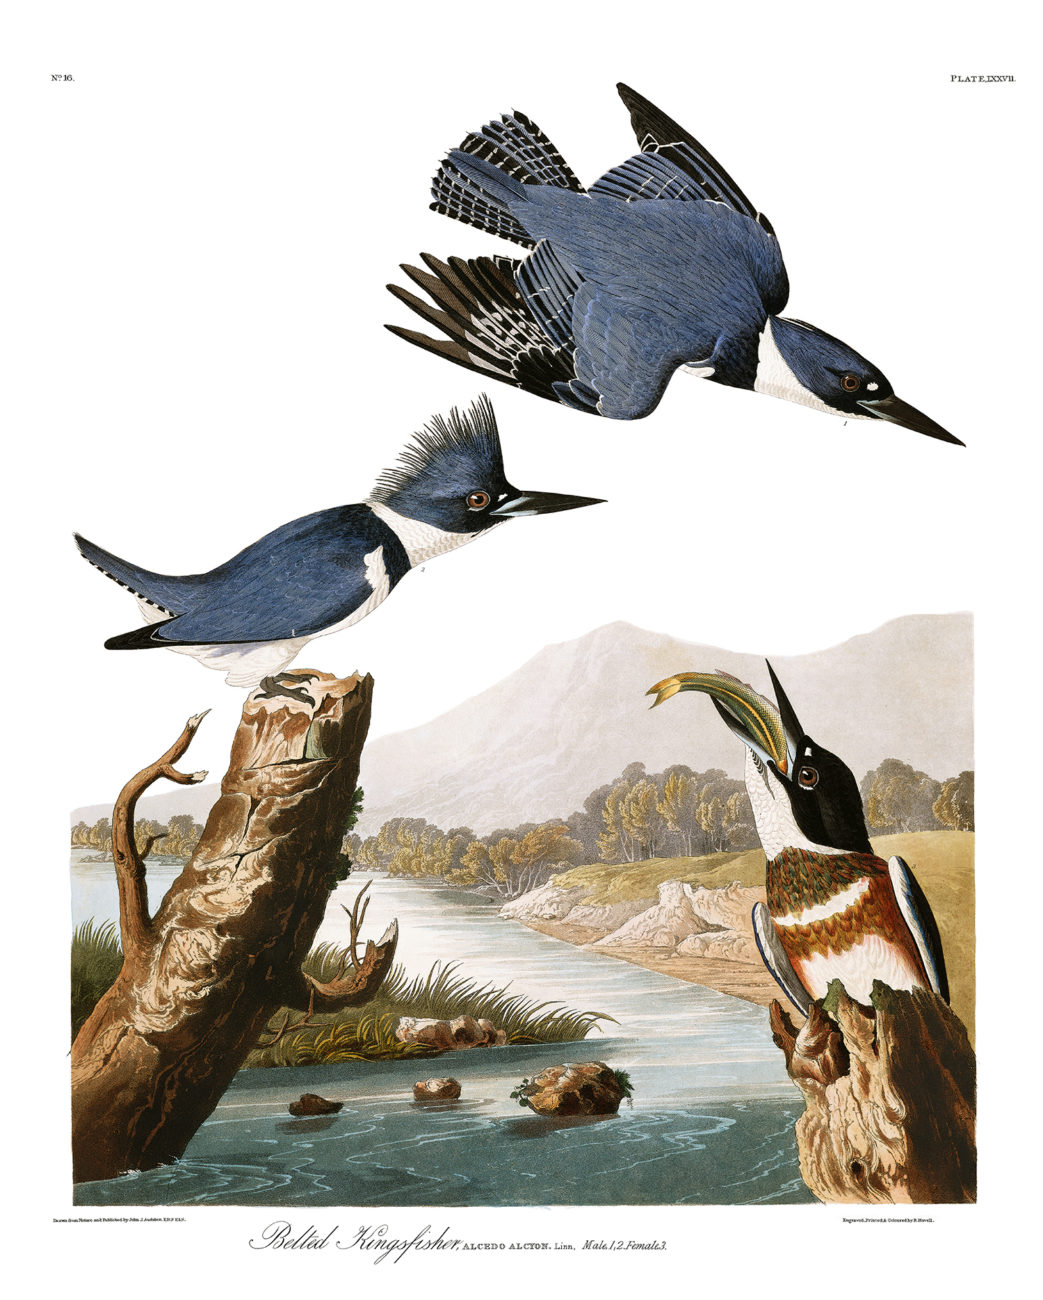 Plate 77 - Belted Kingfisher